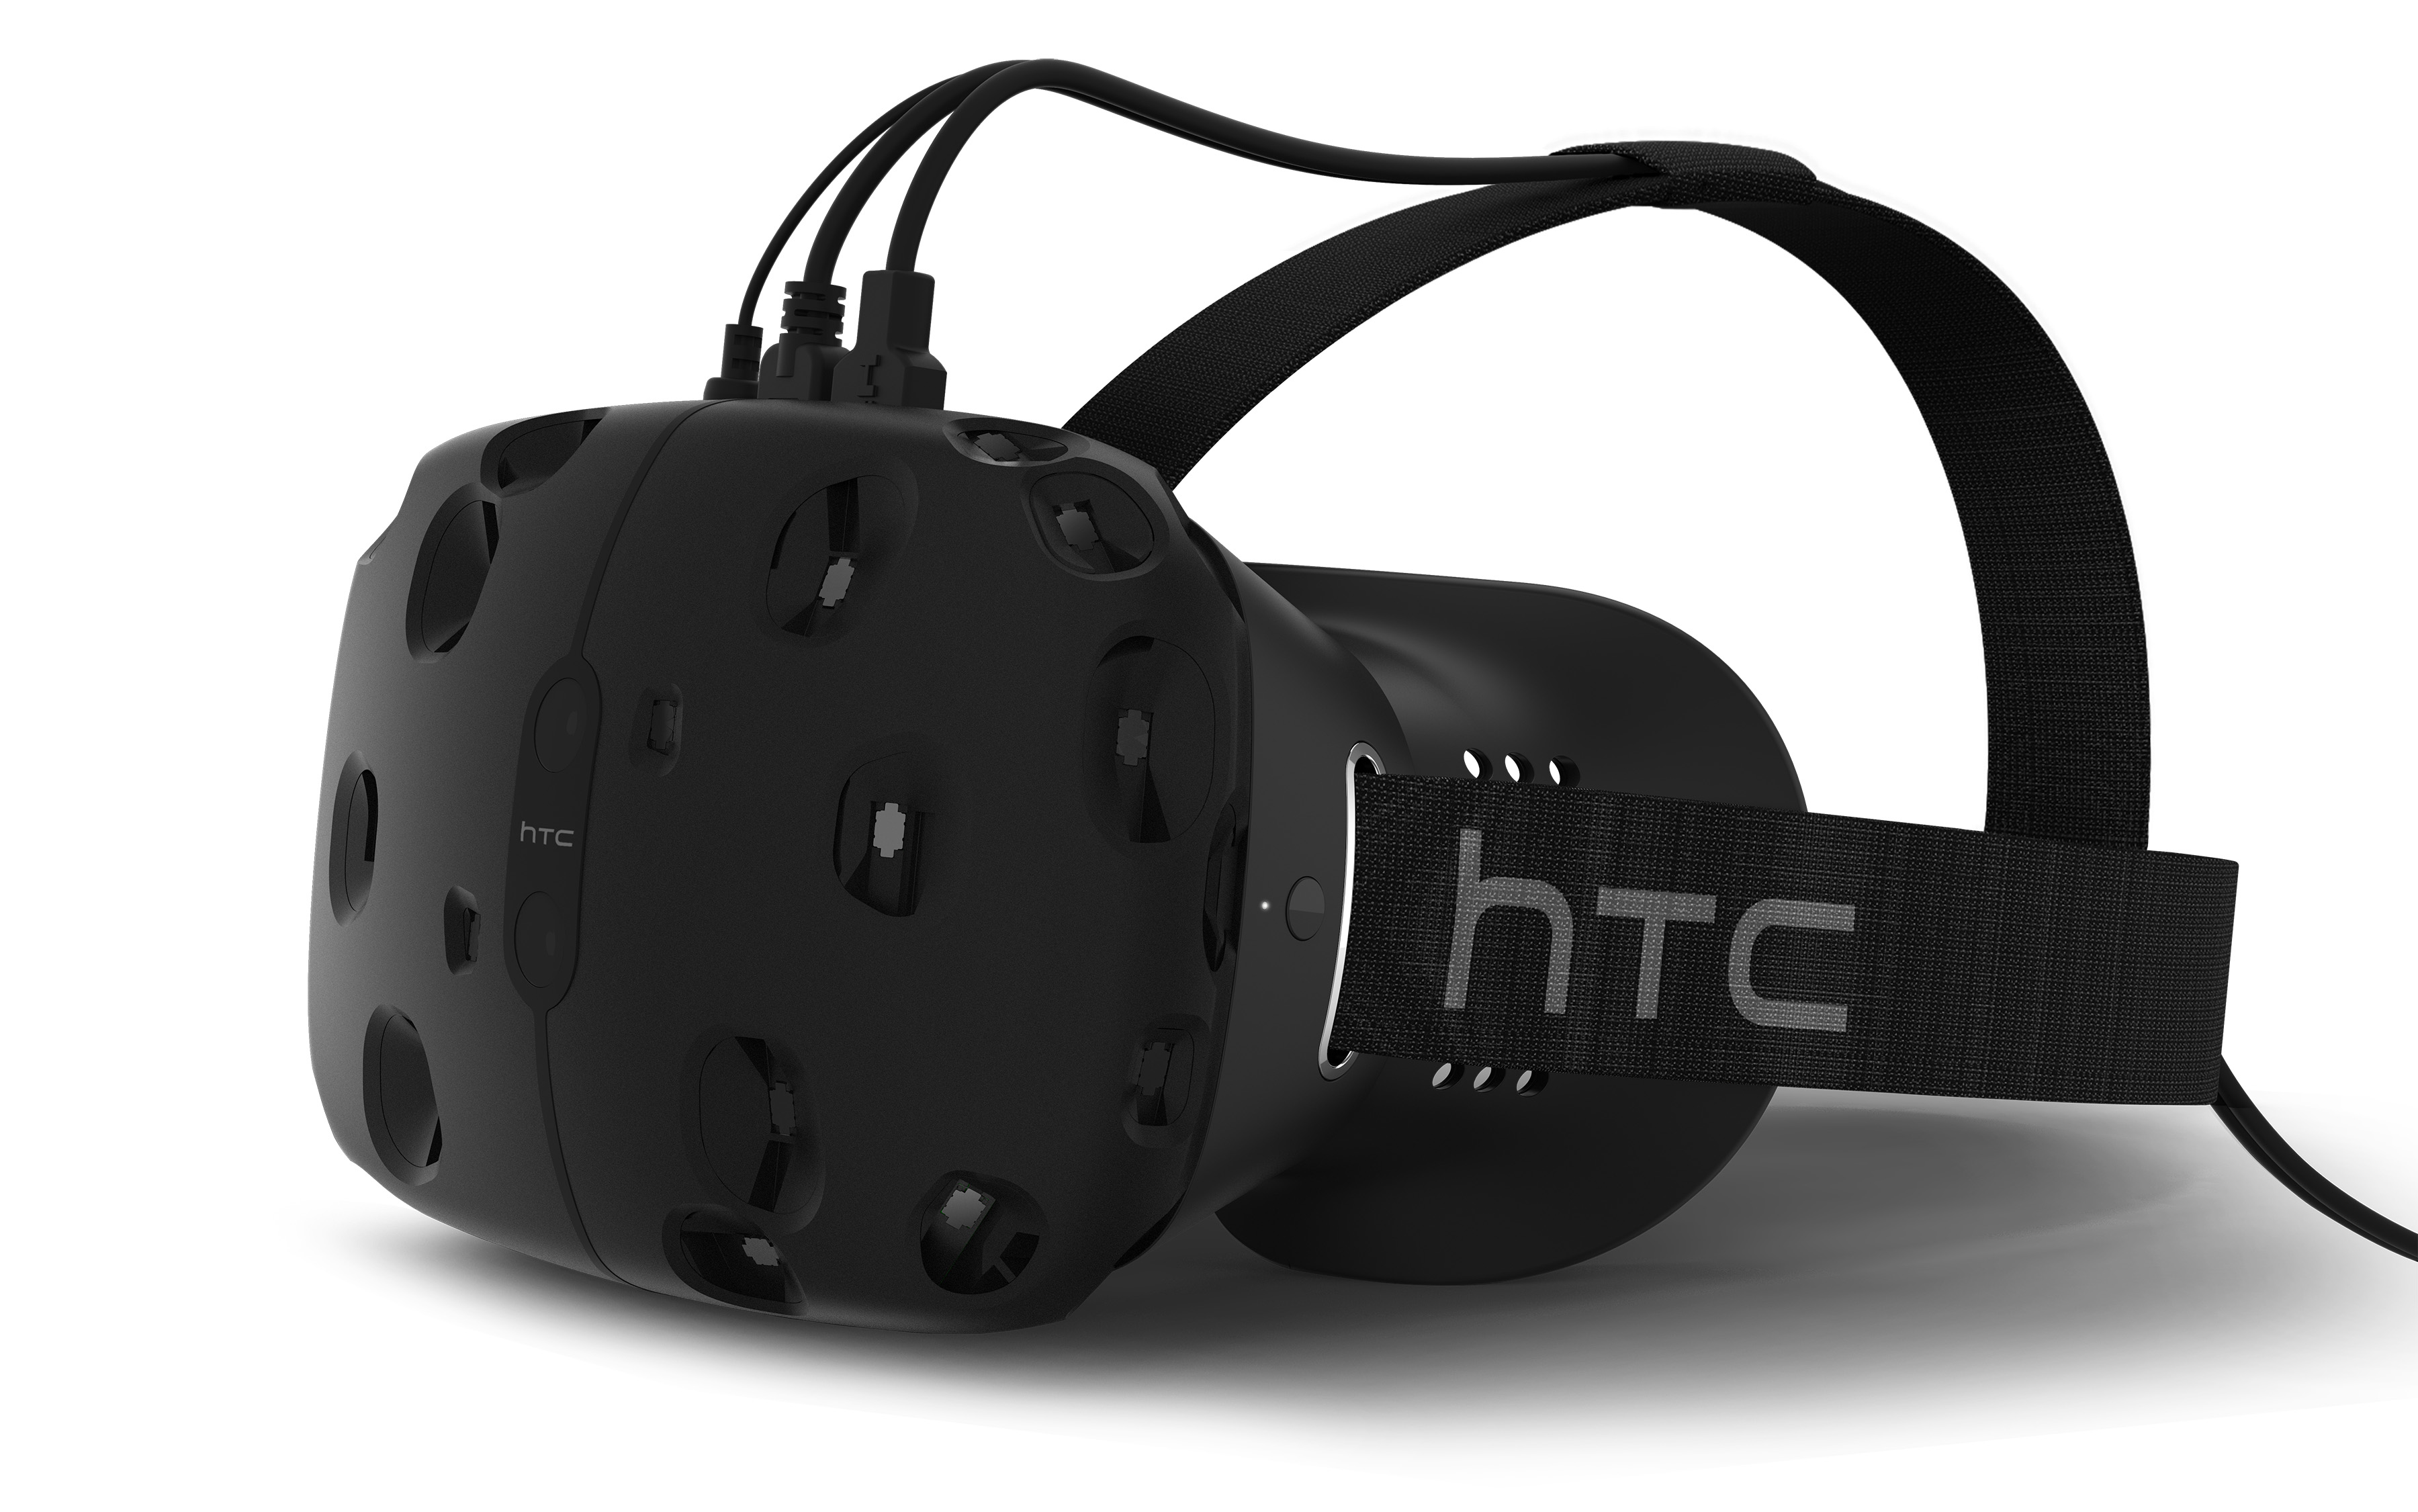 htc-re-vive_6f5ca900f95d3091